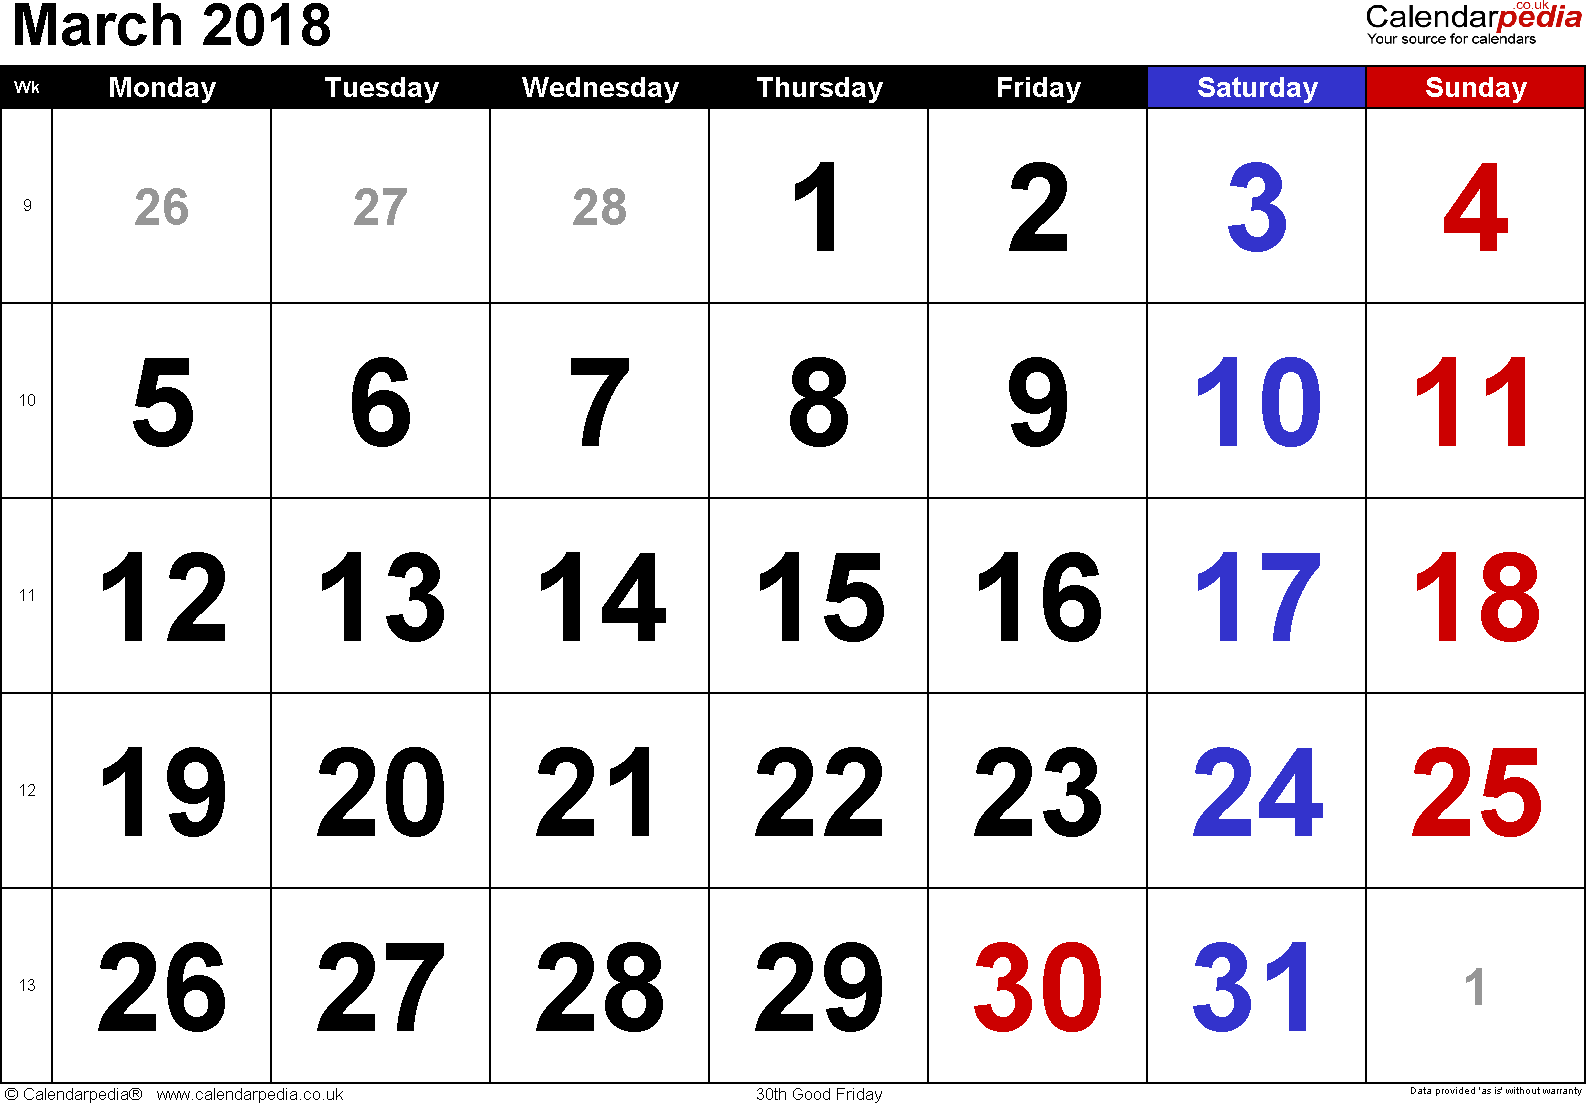 Calendar March 2018, landscape orientation, large numerals, 1 page, with UK bank holidays and week numbers